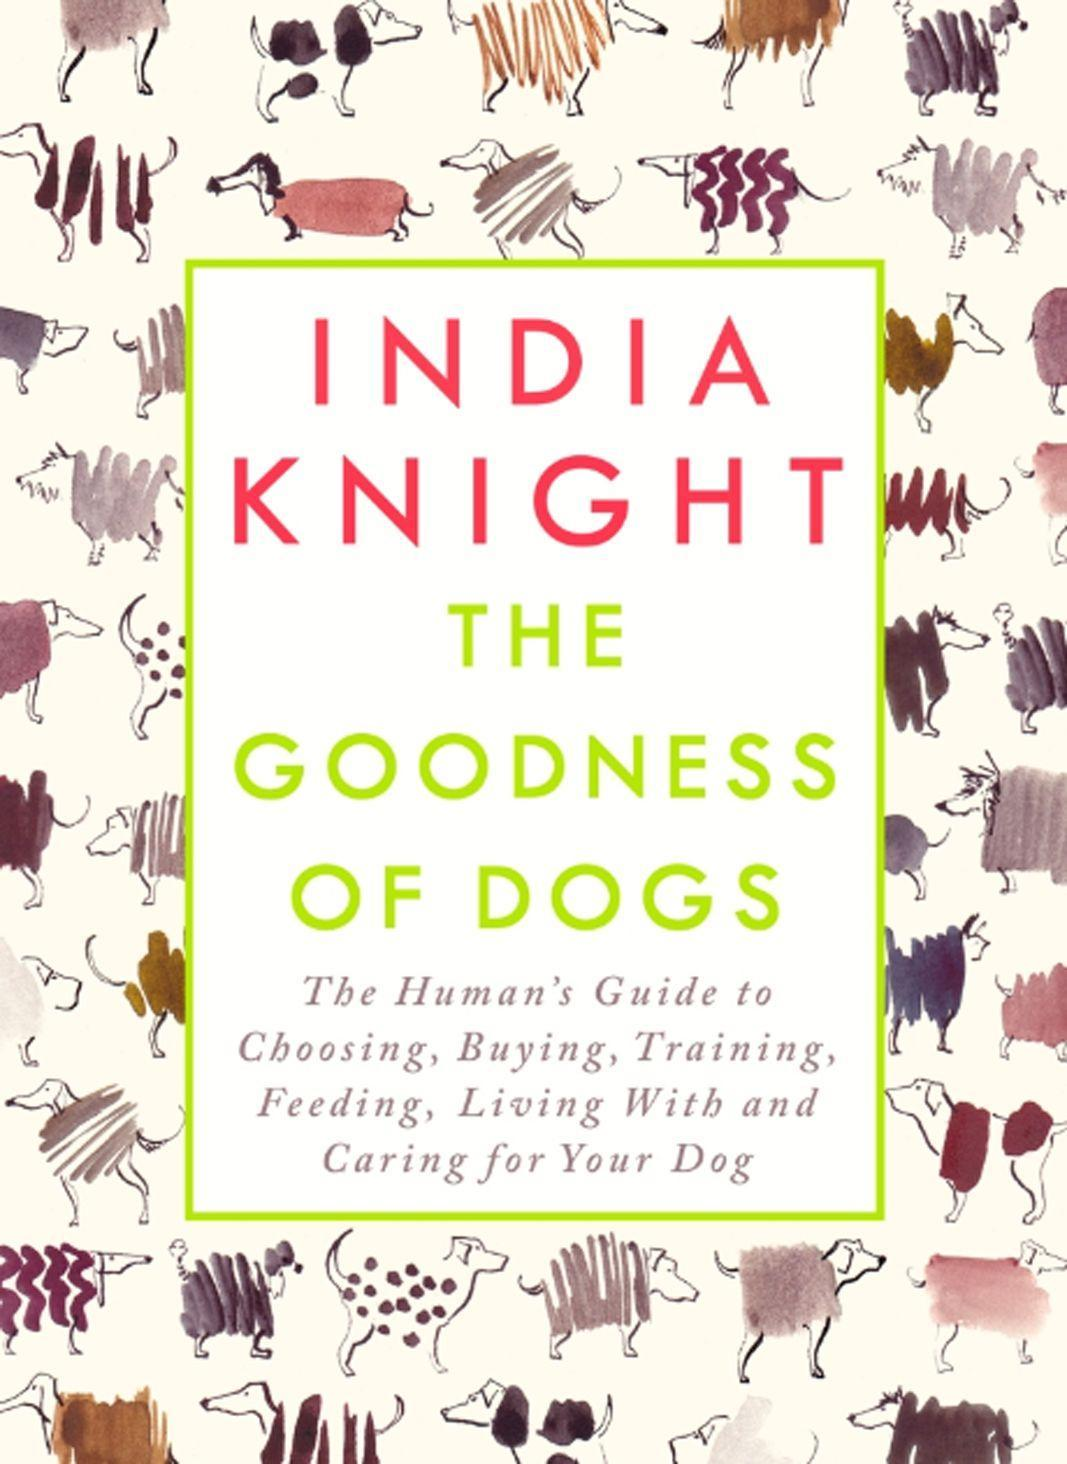 """<p><strong><em>The Goodness of Dogs</em></strong></p> <p>By India Knight</p> <p>The perfect gift for that friend or relative who you suspect prefers dogs to you. Written by the very funny <em>Sunday Times</em> columnist, India Knight, the book is dedicated to her dog Brodie, and written on the opening page is: """"For Brodie, for when he can read"""" – which tells you all you need to know about the serious dog love in this book.</p> <p>It's a practical, heartwarming, hilarious book about dogs; whether you should get one, how you will love it, what you will have to sacrifice for it, and the unspeakable moment where you realise you chose the wrong puppy...</p>"""